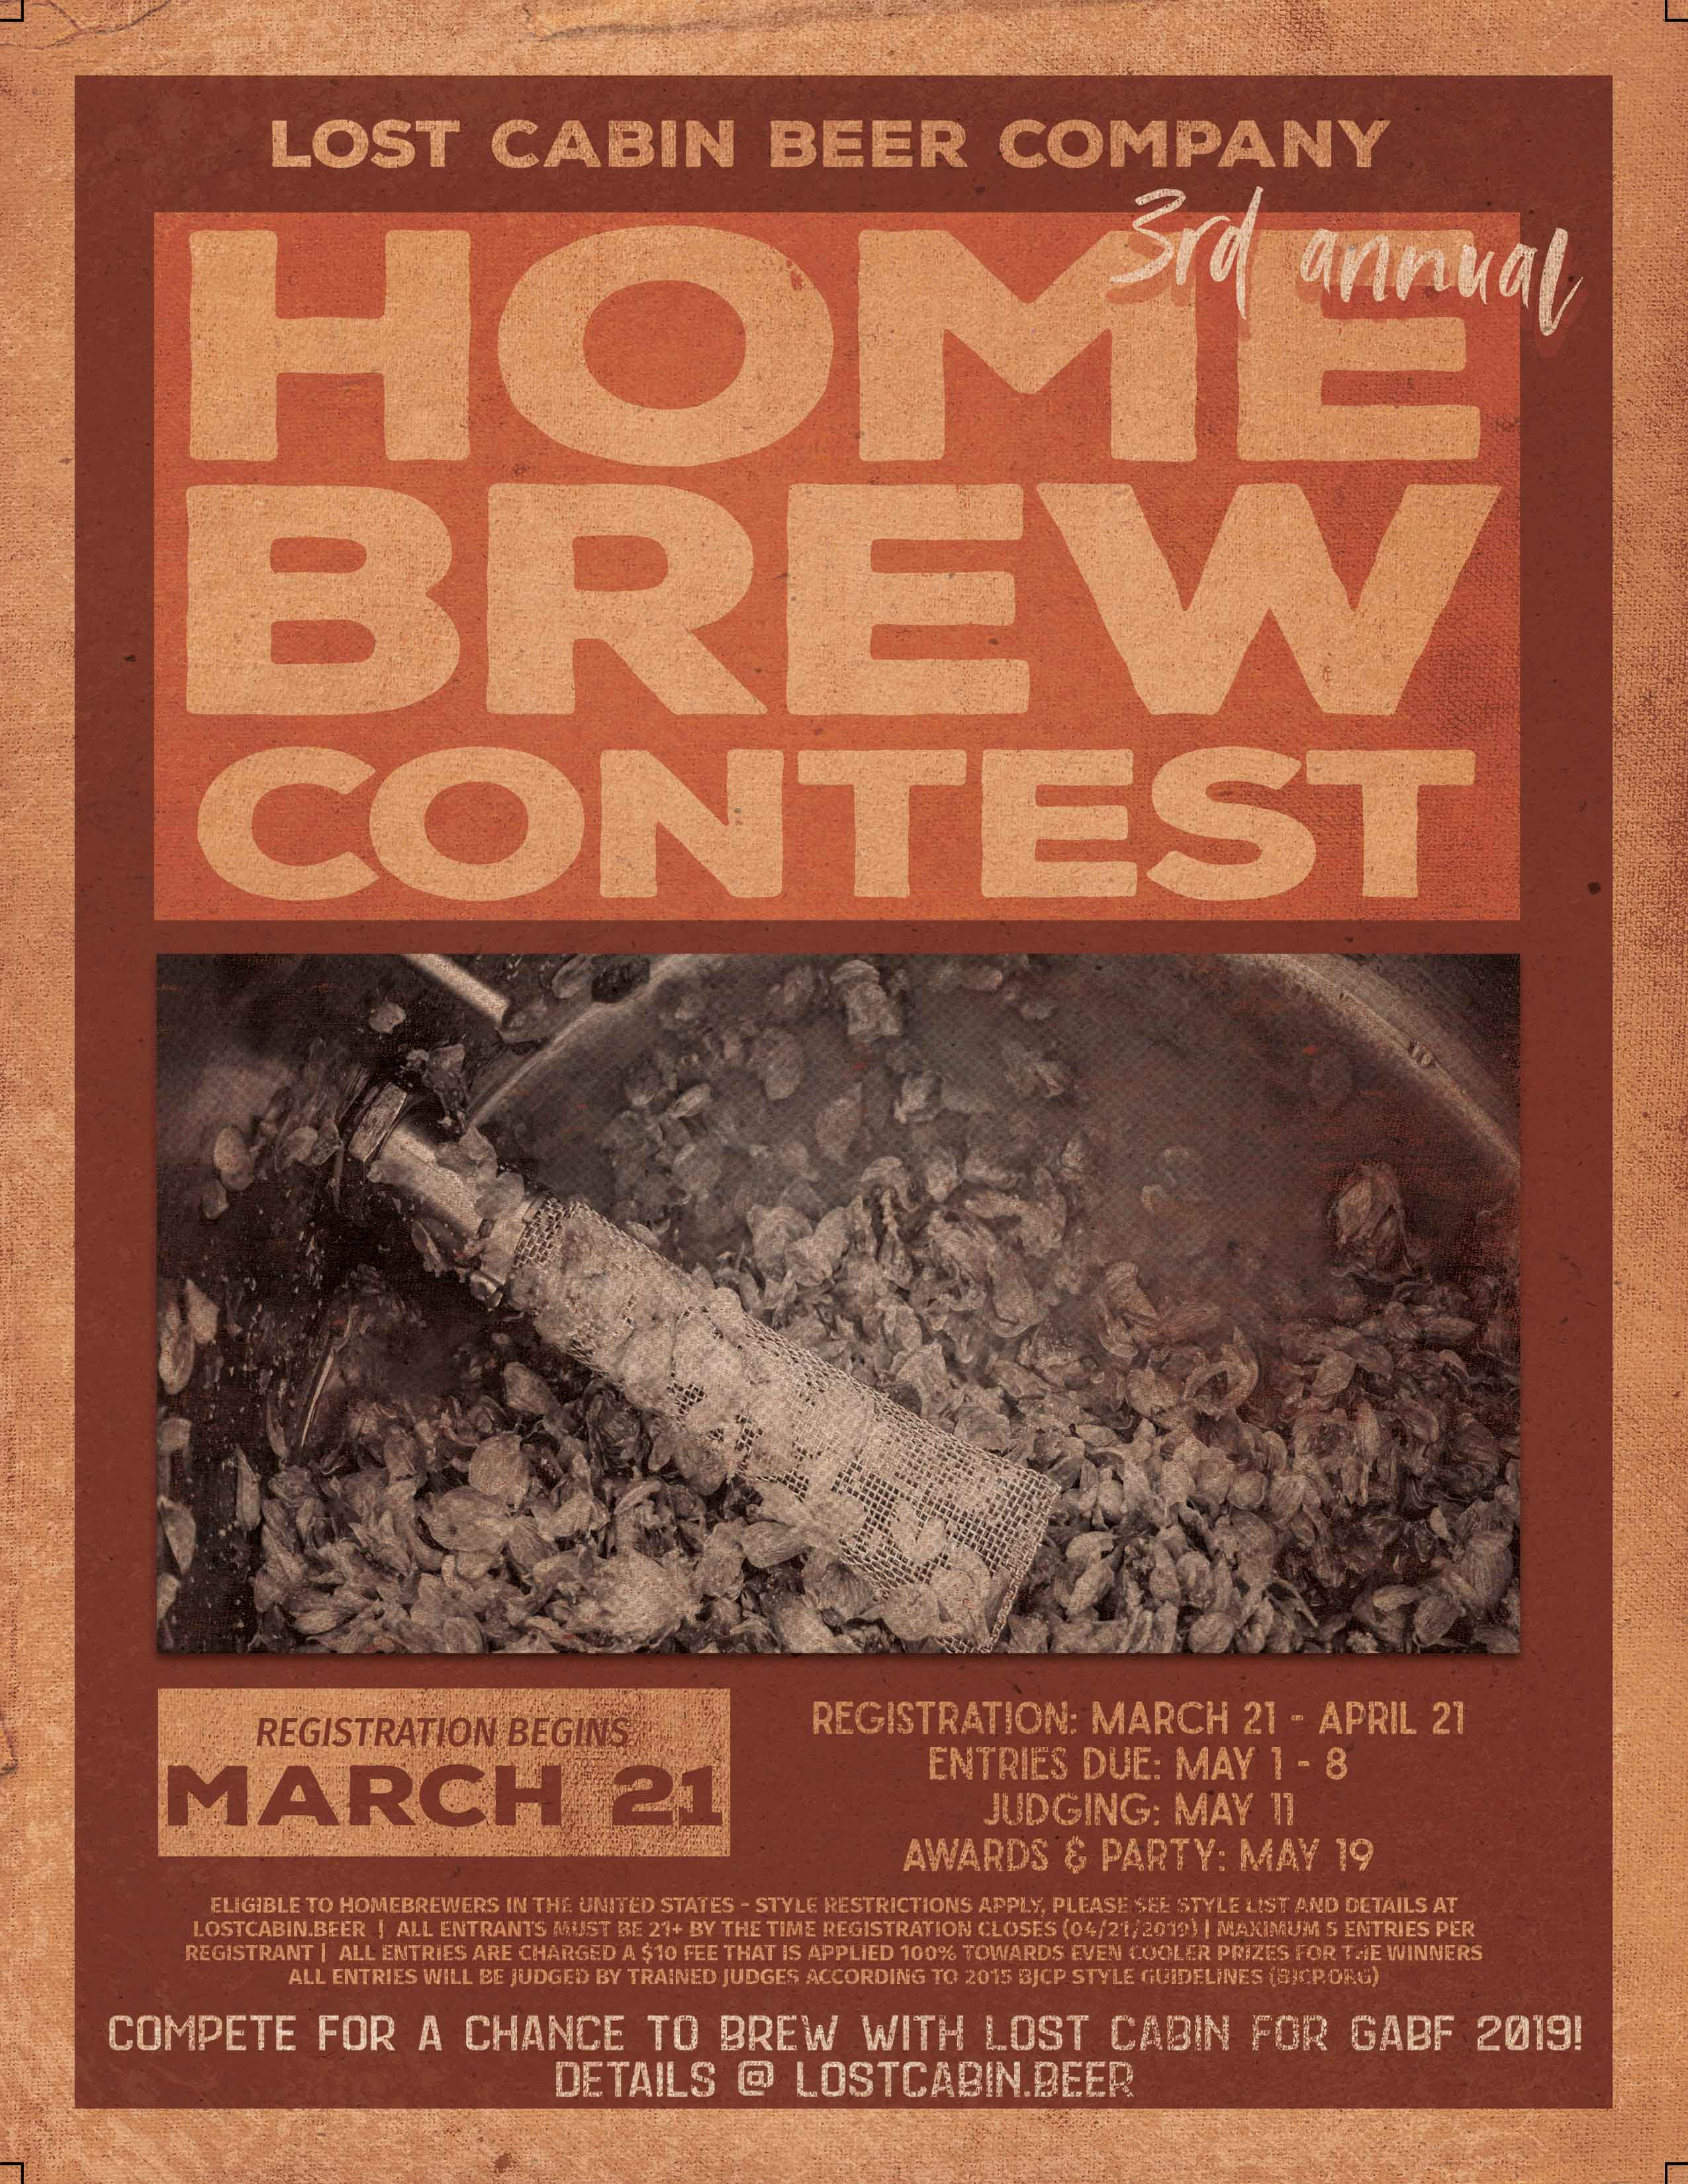 Homebrew Party with Lost Cabin Beer Co. in Rapid City, SD